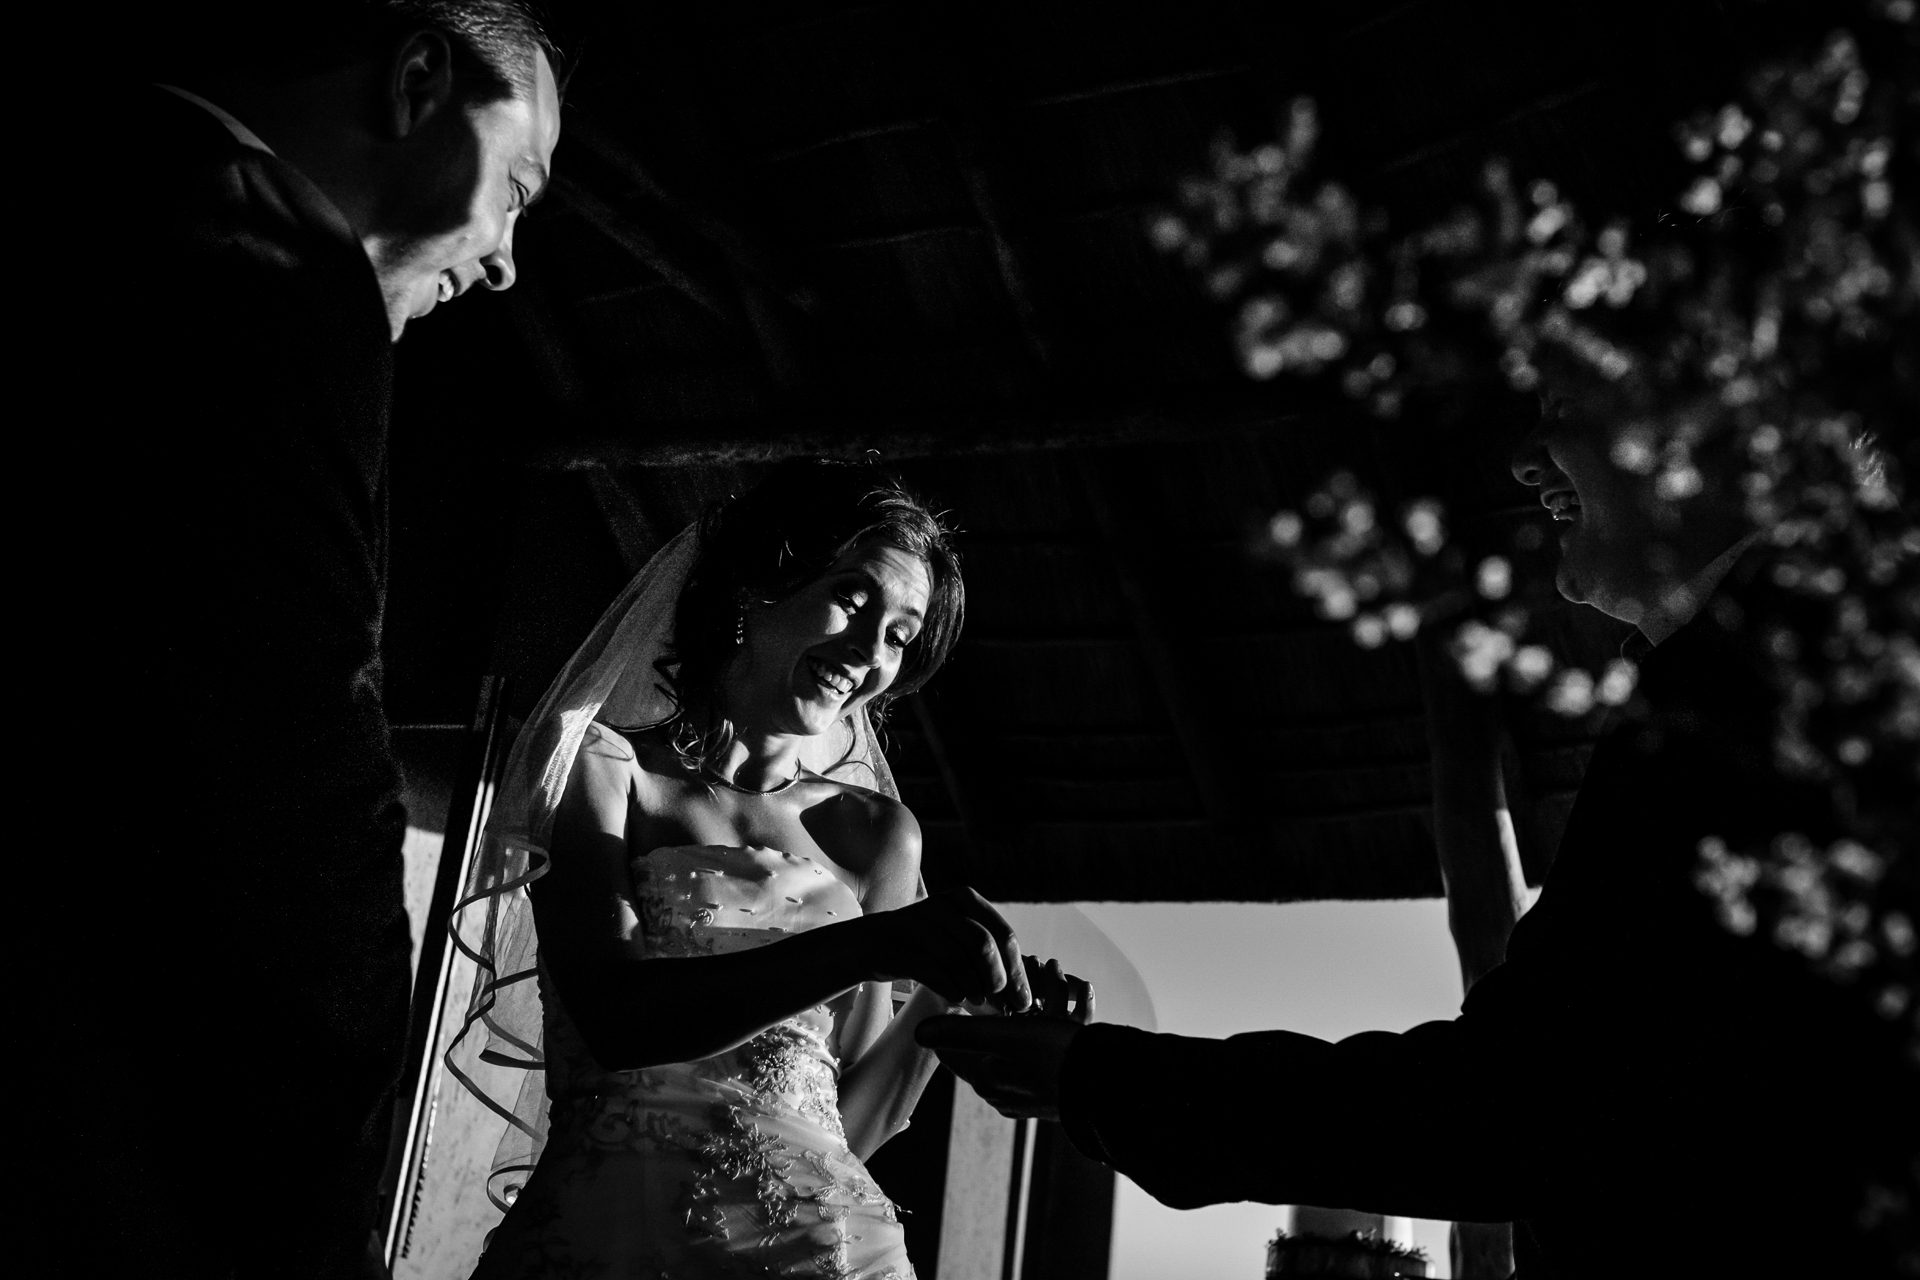 A funny moment when the bride took the wedding ring to place on the groom. I love the light and emotions in this image from a South Africa elopement ceremony.